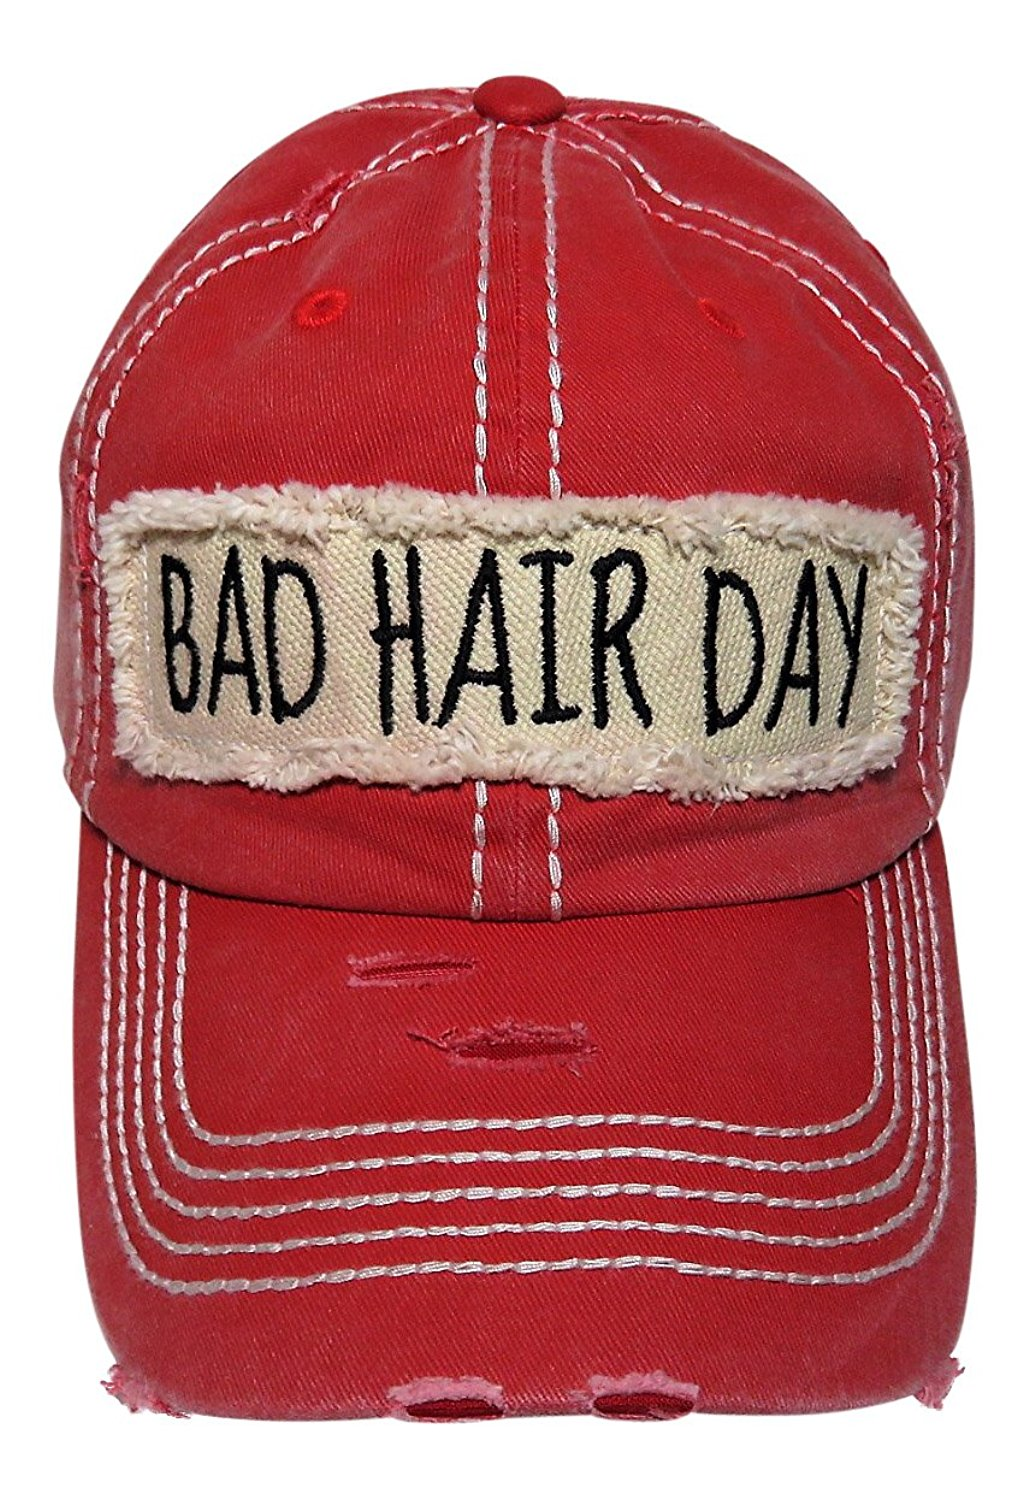 97ac2ea7992 Get Quotations · Spirit Caps Embroidered Bad Hair Day Frayed Patch Washed  Vintage Baseball Cap Hat